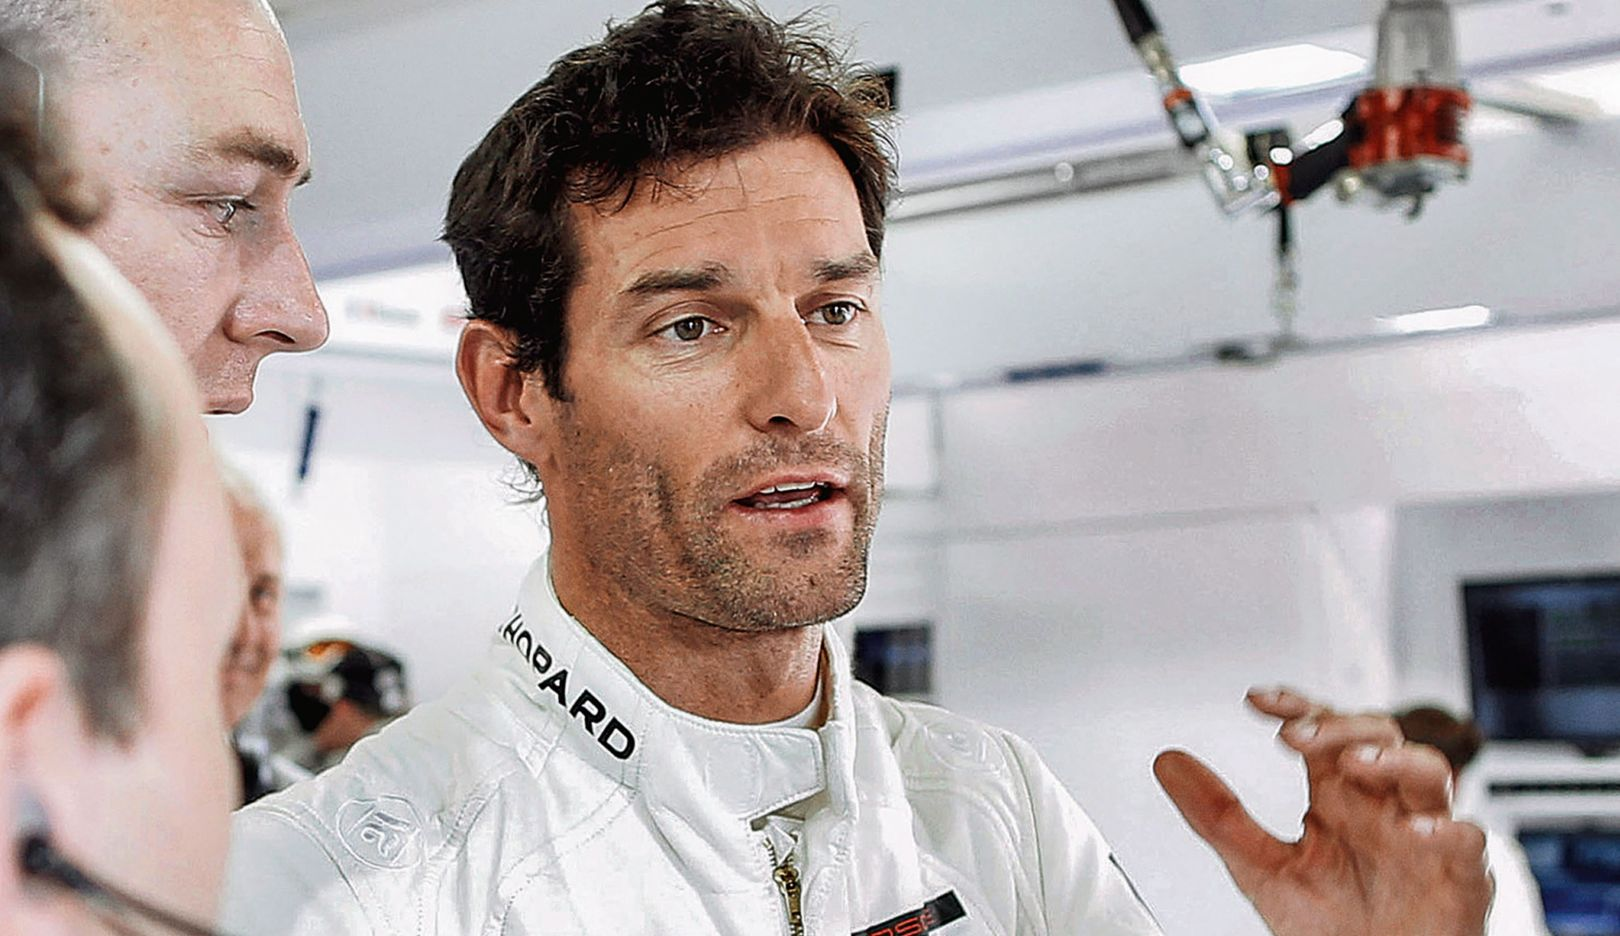 Mark Webber, Porsche Engineering, 2018, Porsche AG